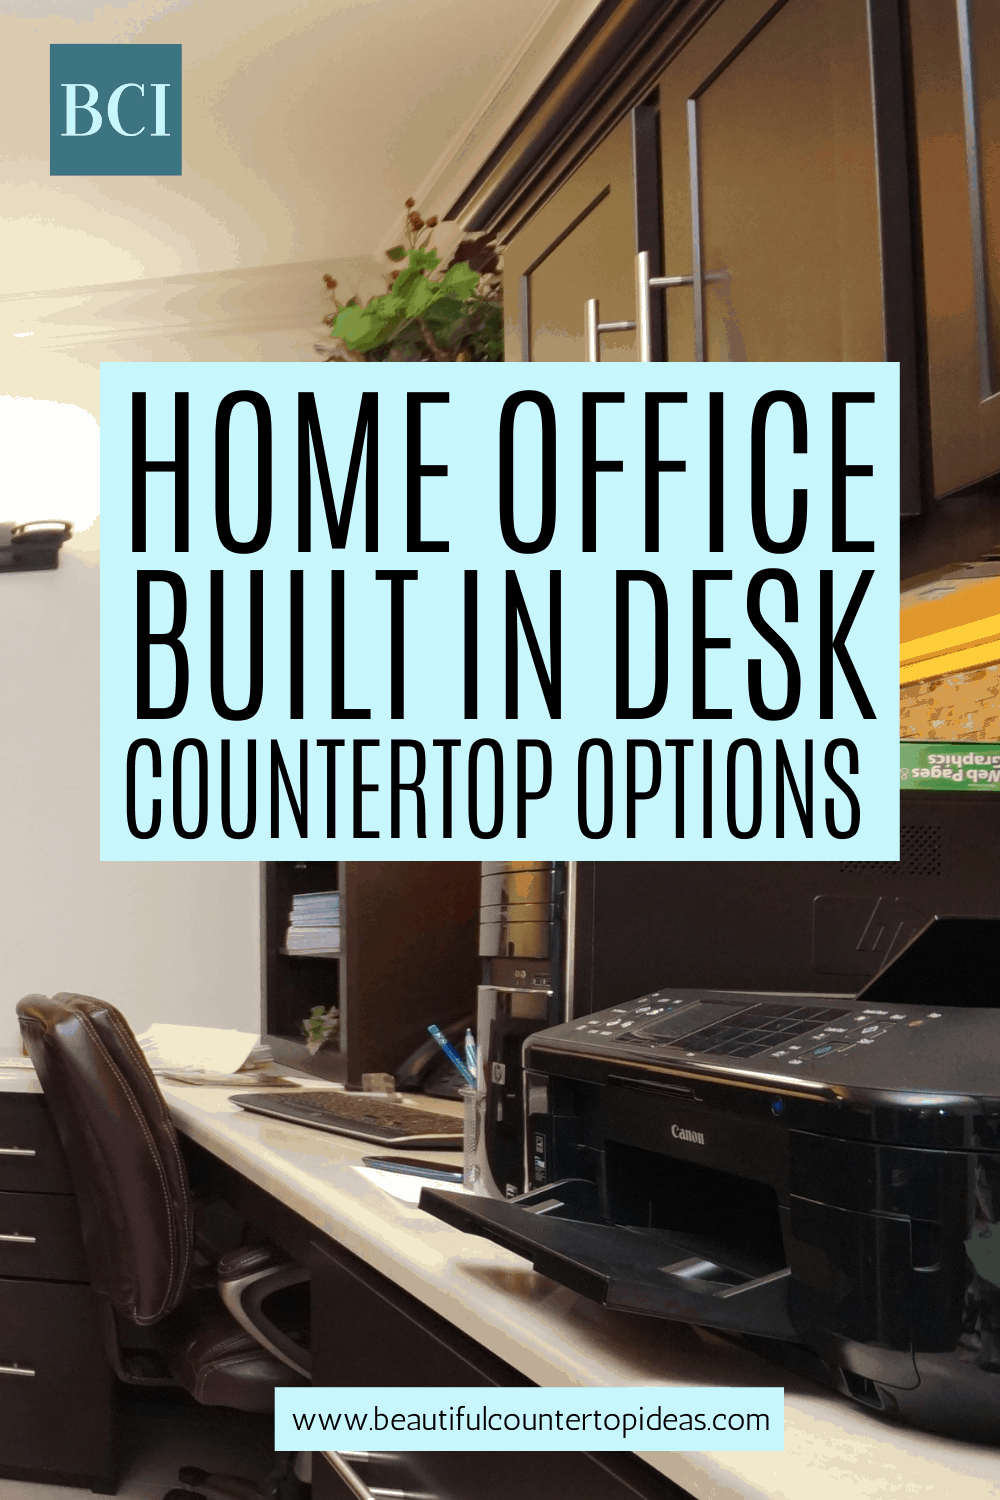 With everyone doing WFH and remote learning, a home office built in desk might be a good idea. Get advice on the countertop options out there.